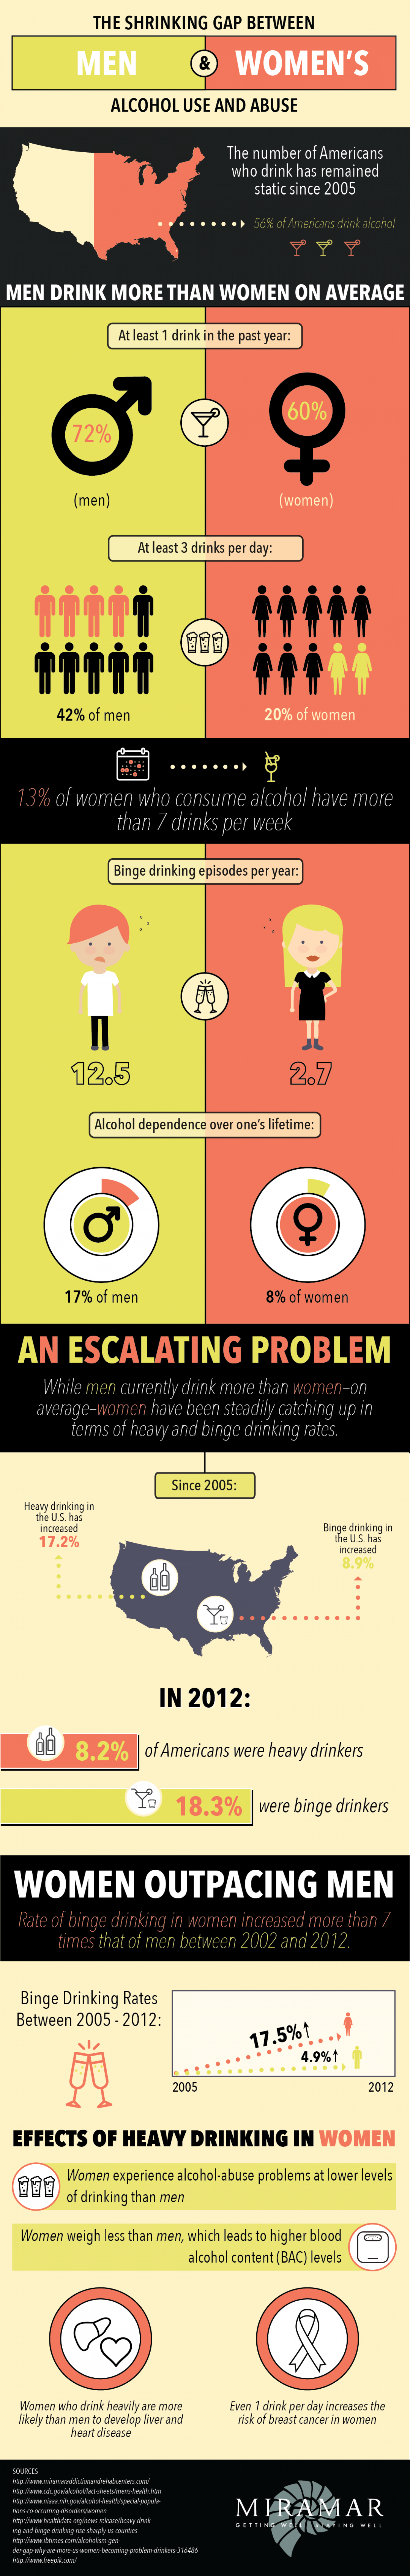 The Shrinking Gap Between Men and Women's Alcohol Use and Abuse Infographic